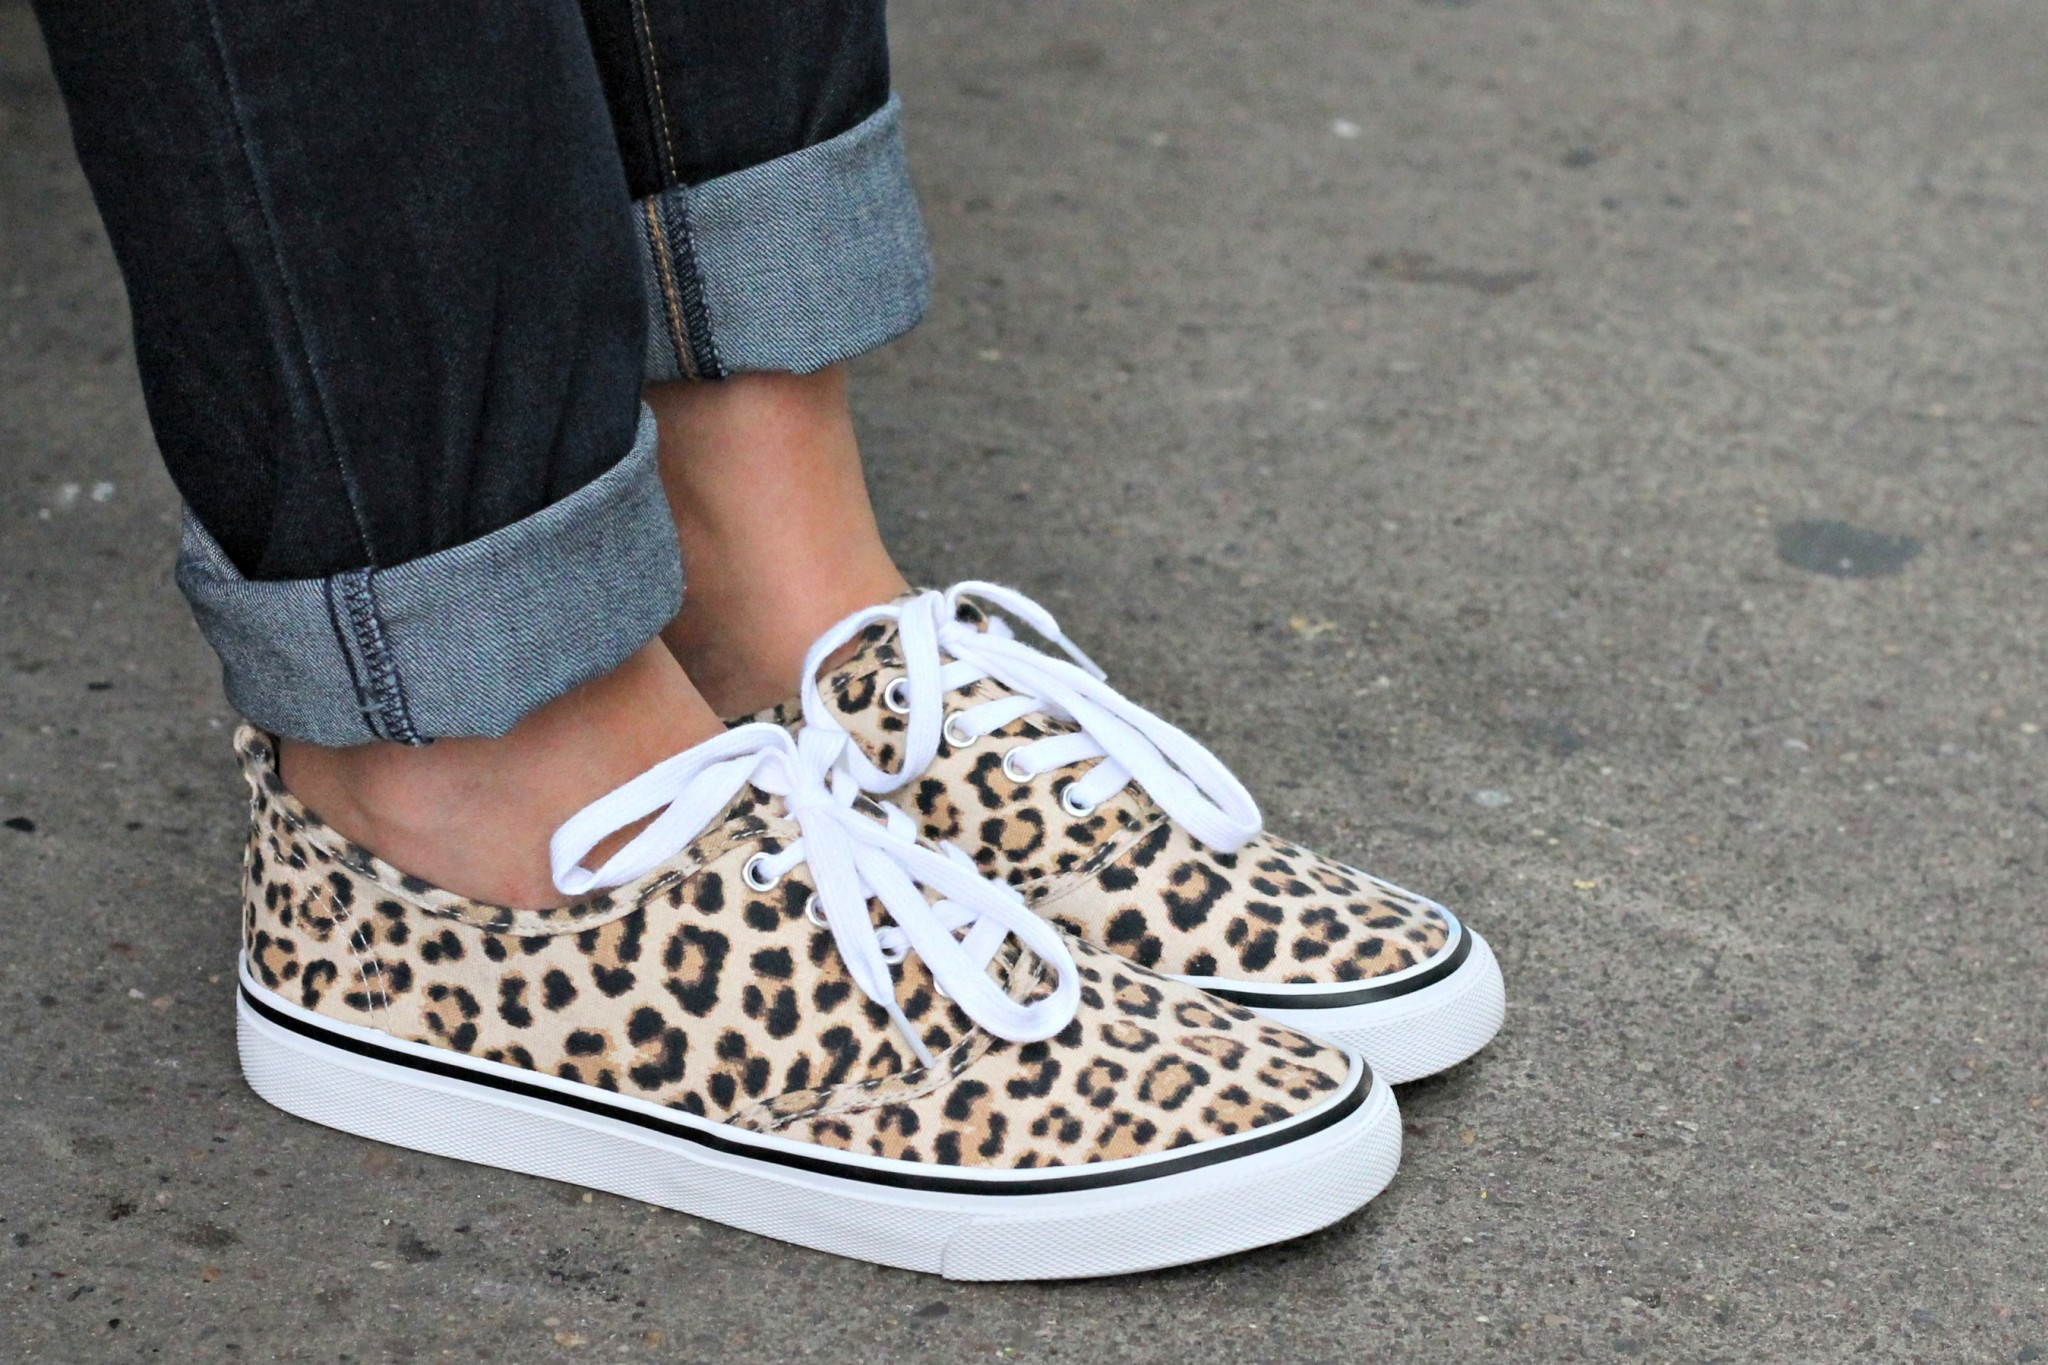 Sneakers - Top Fashion Trends For Fall 2014